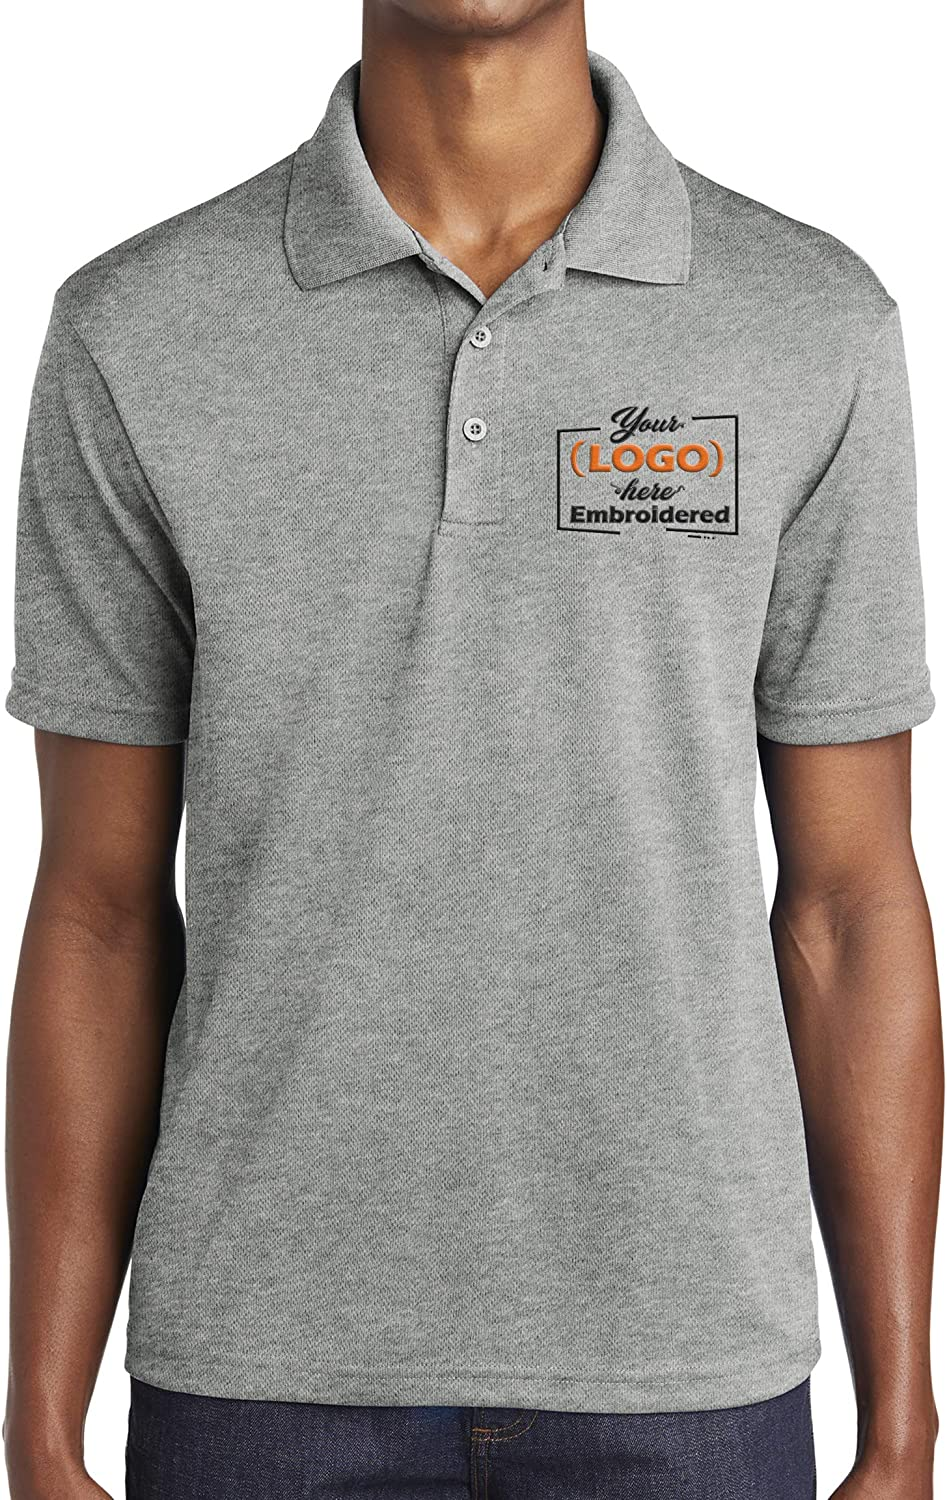 Custom Embroidered Logo Polo Shirt for Men Personalized Embroidery Company Logo